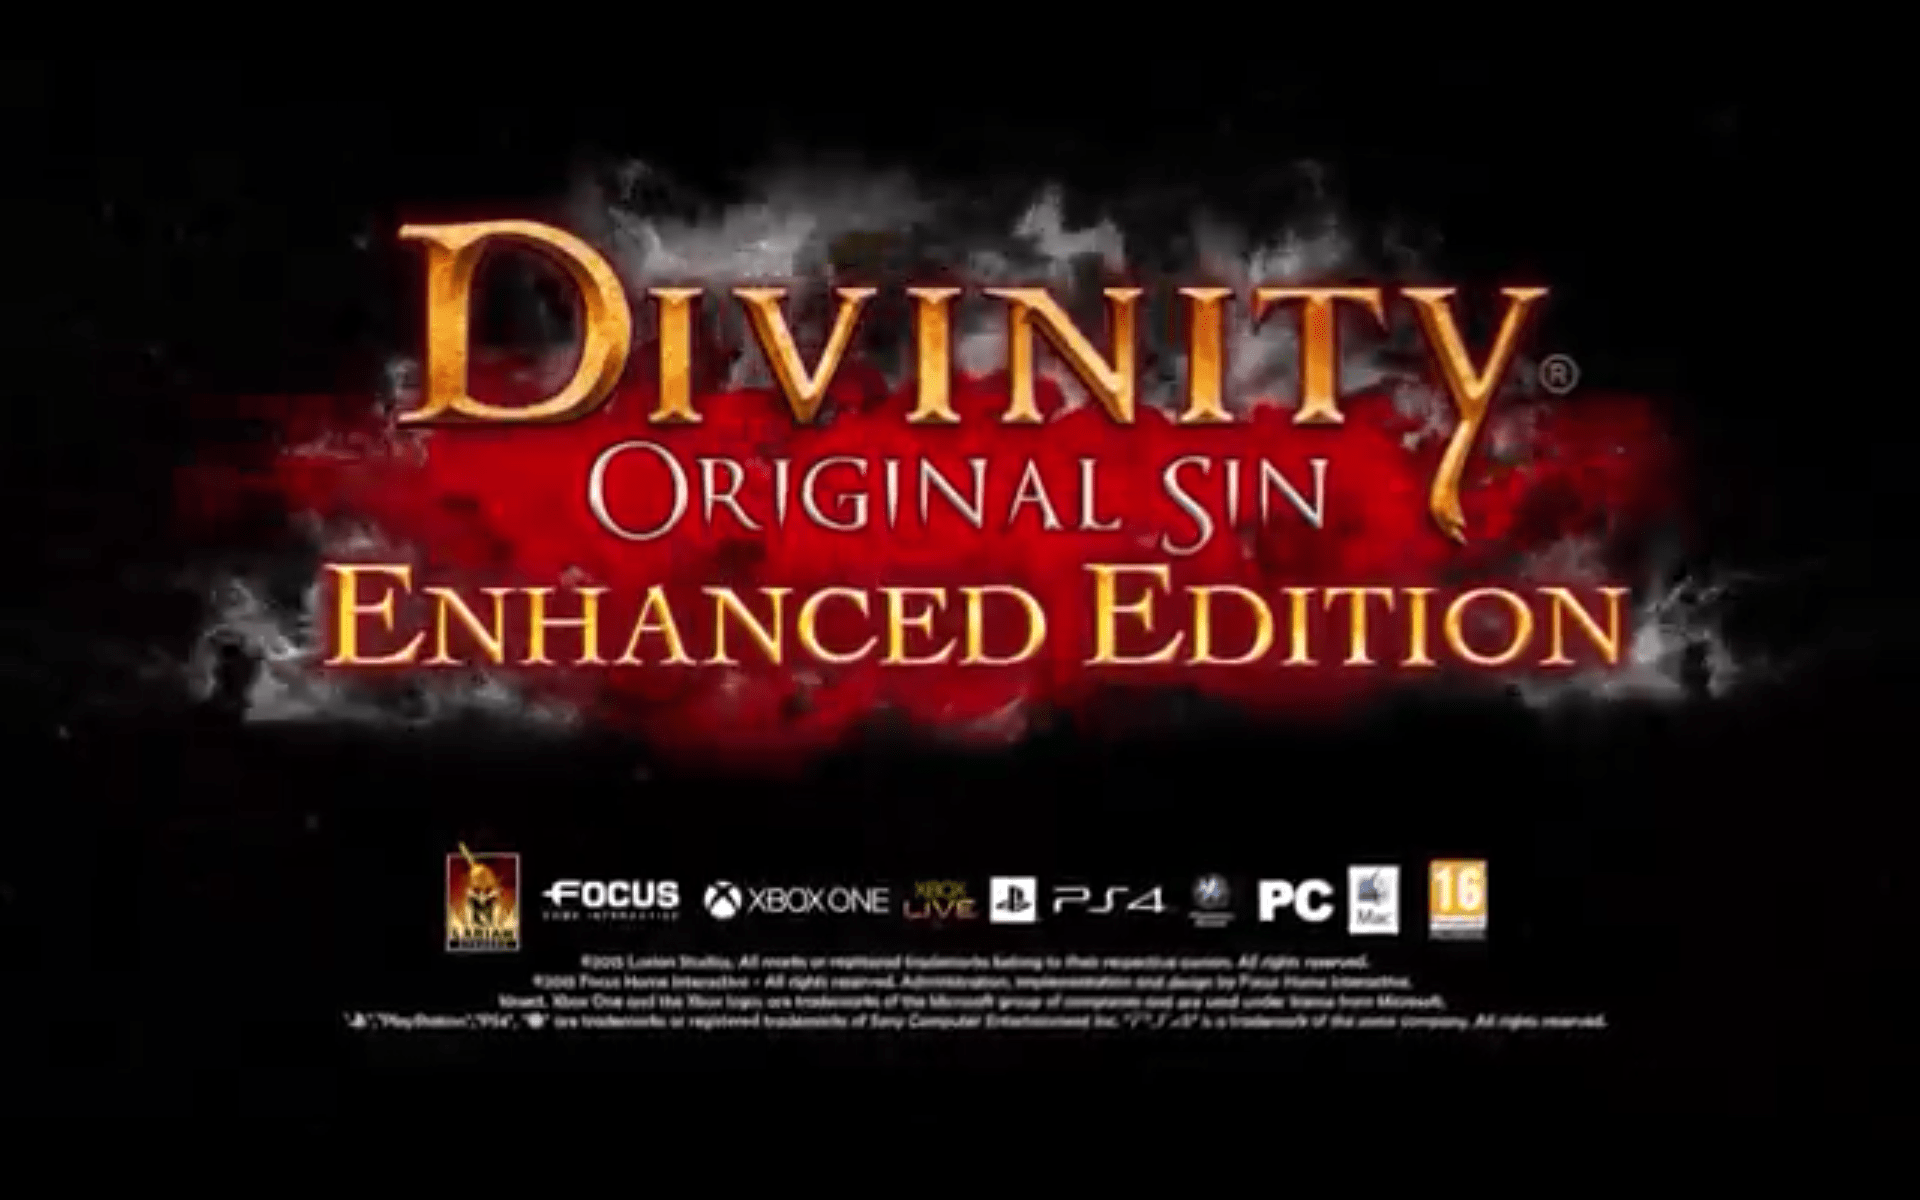 Divinity: Original Sin - Enhanced Edition High